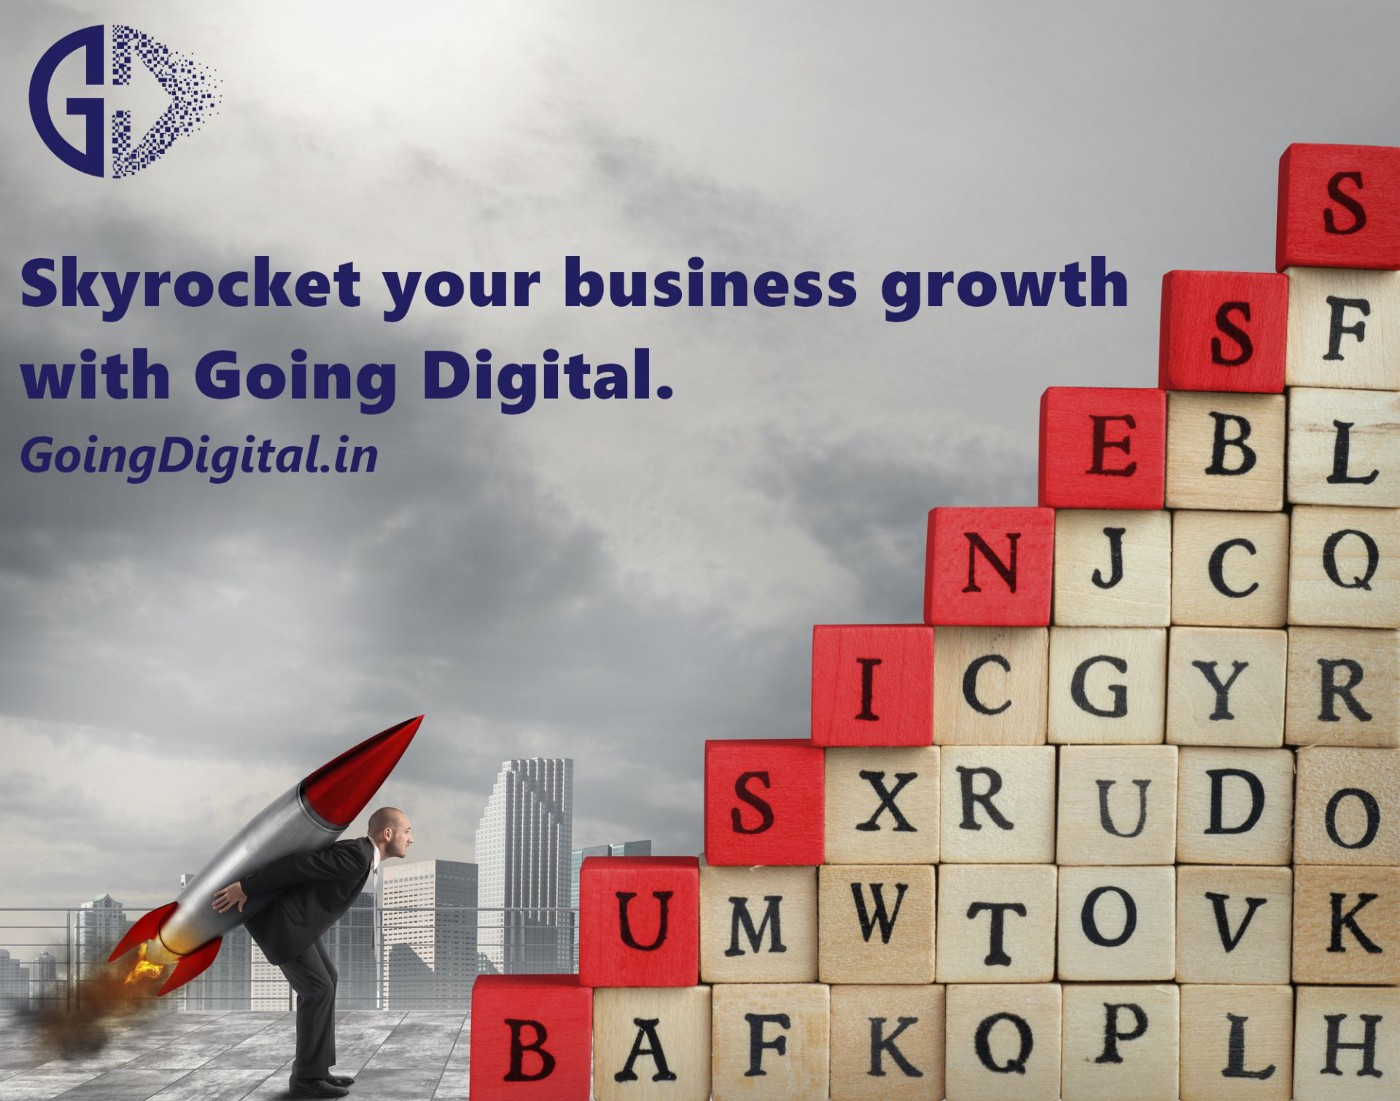 Skyrocket your business growth even in these tough times by Going Digital